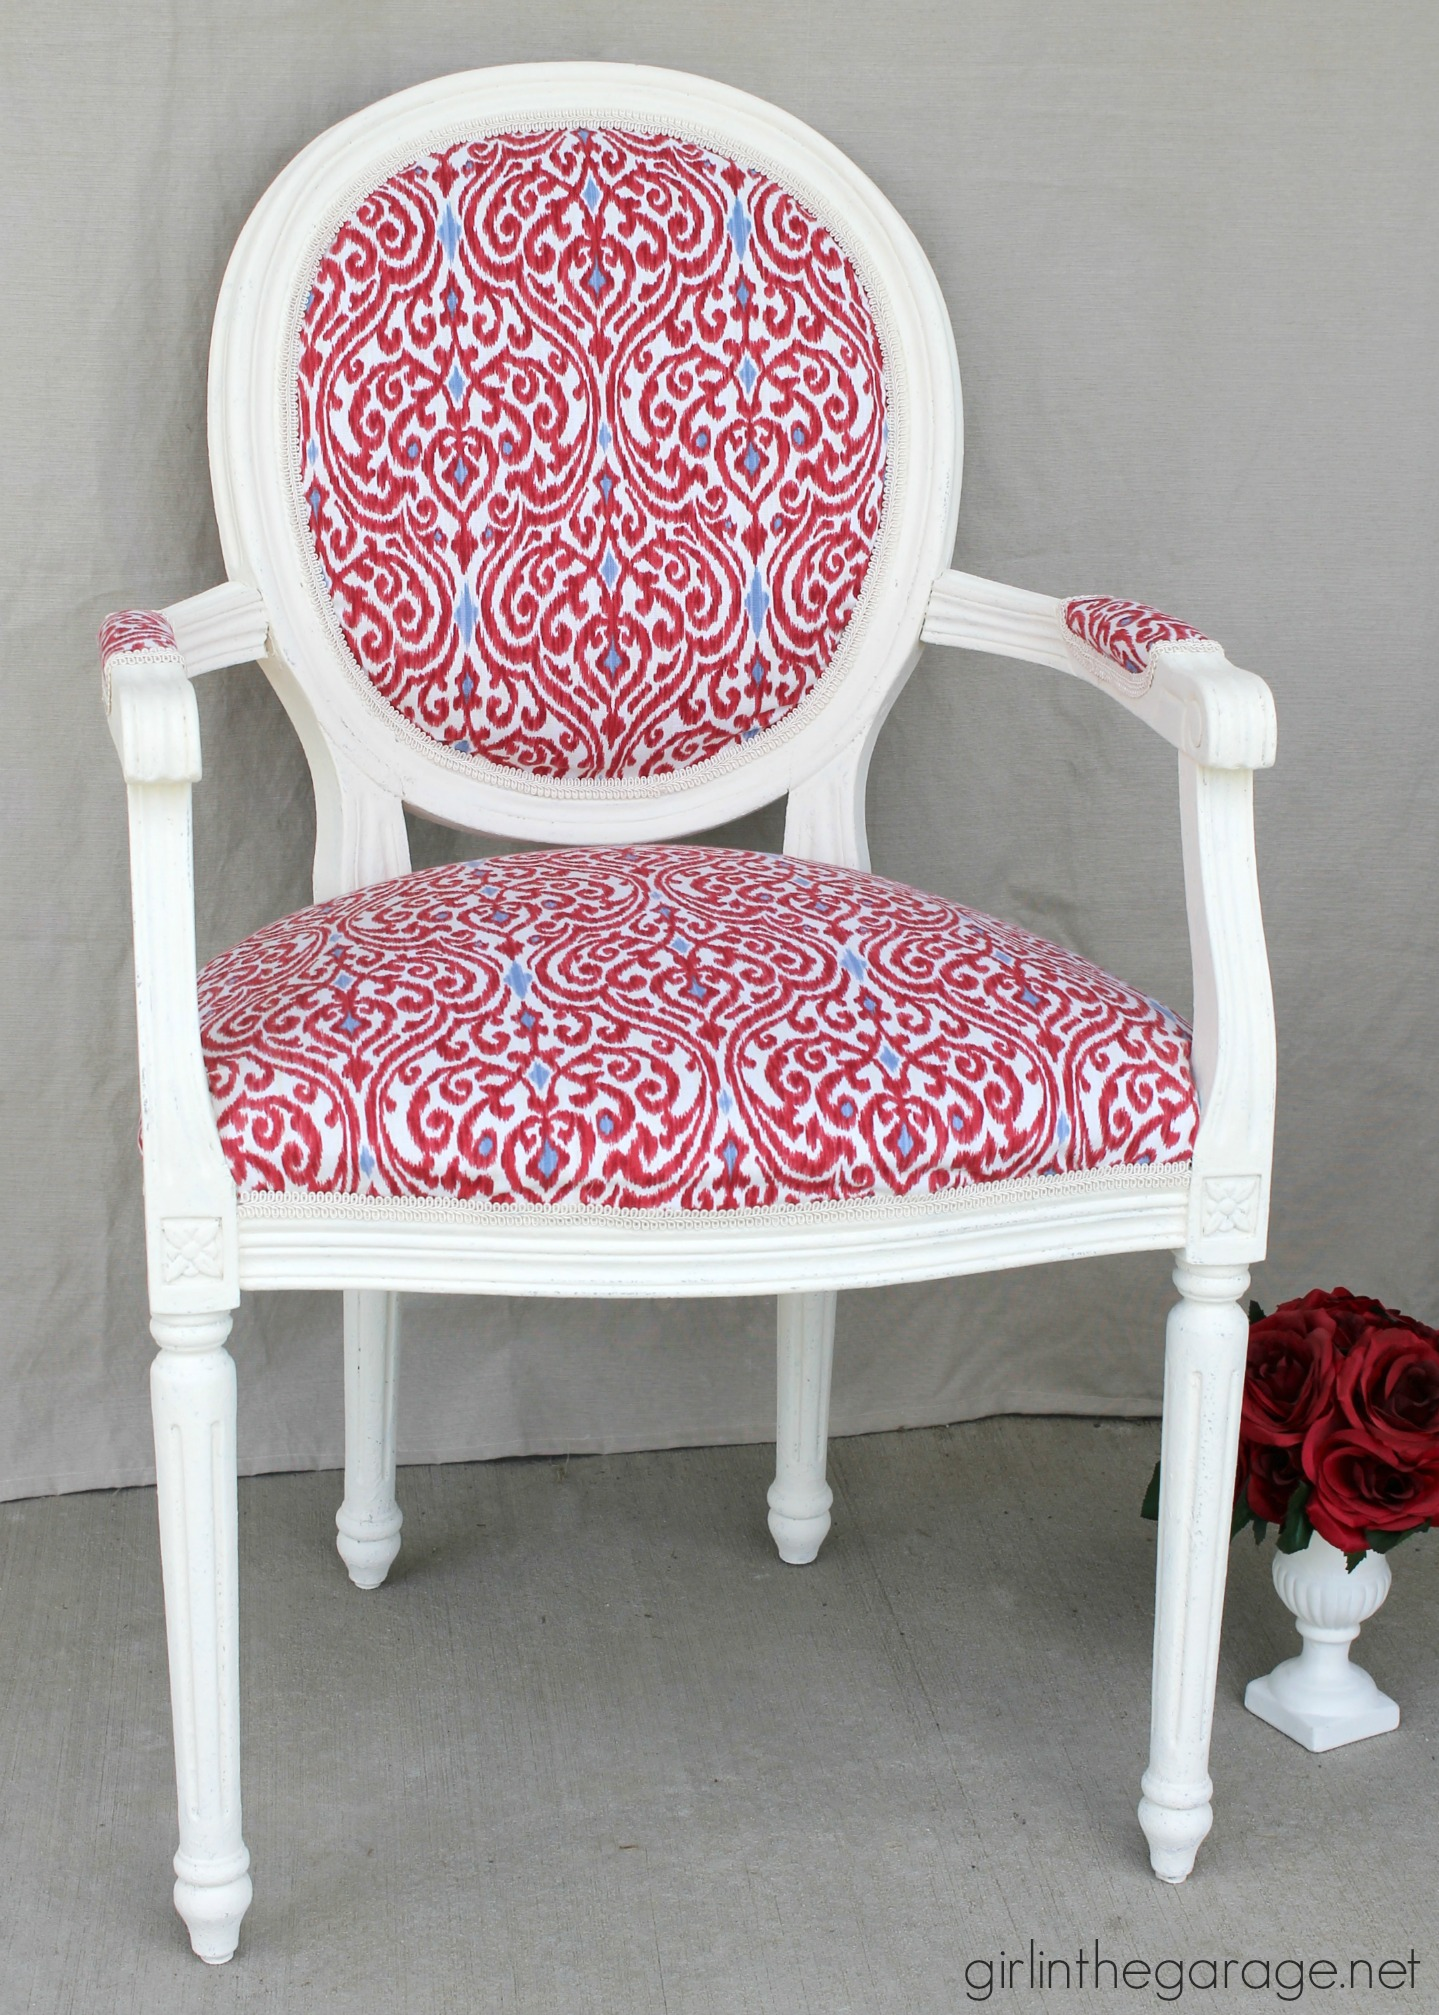 DIY Reupholstered Chair Makeover And Lessons Learned   By Girl In The Garage